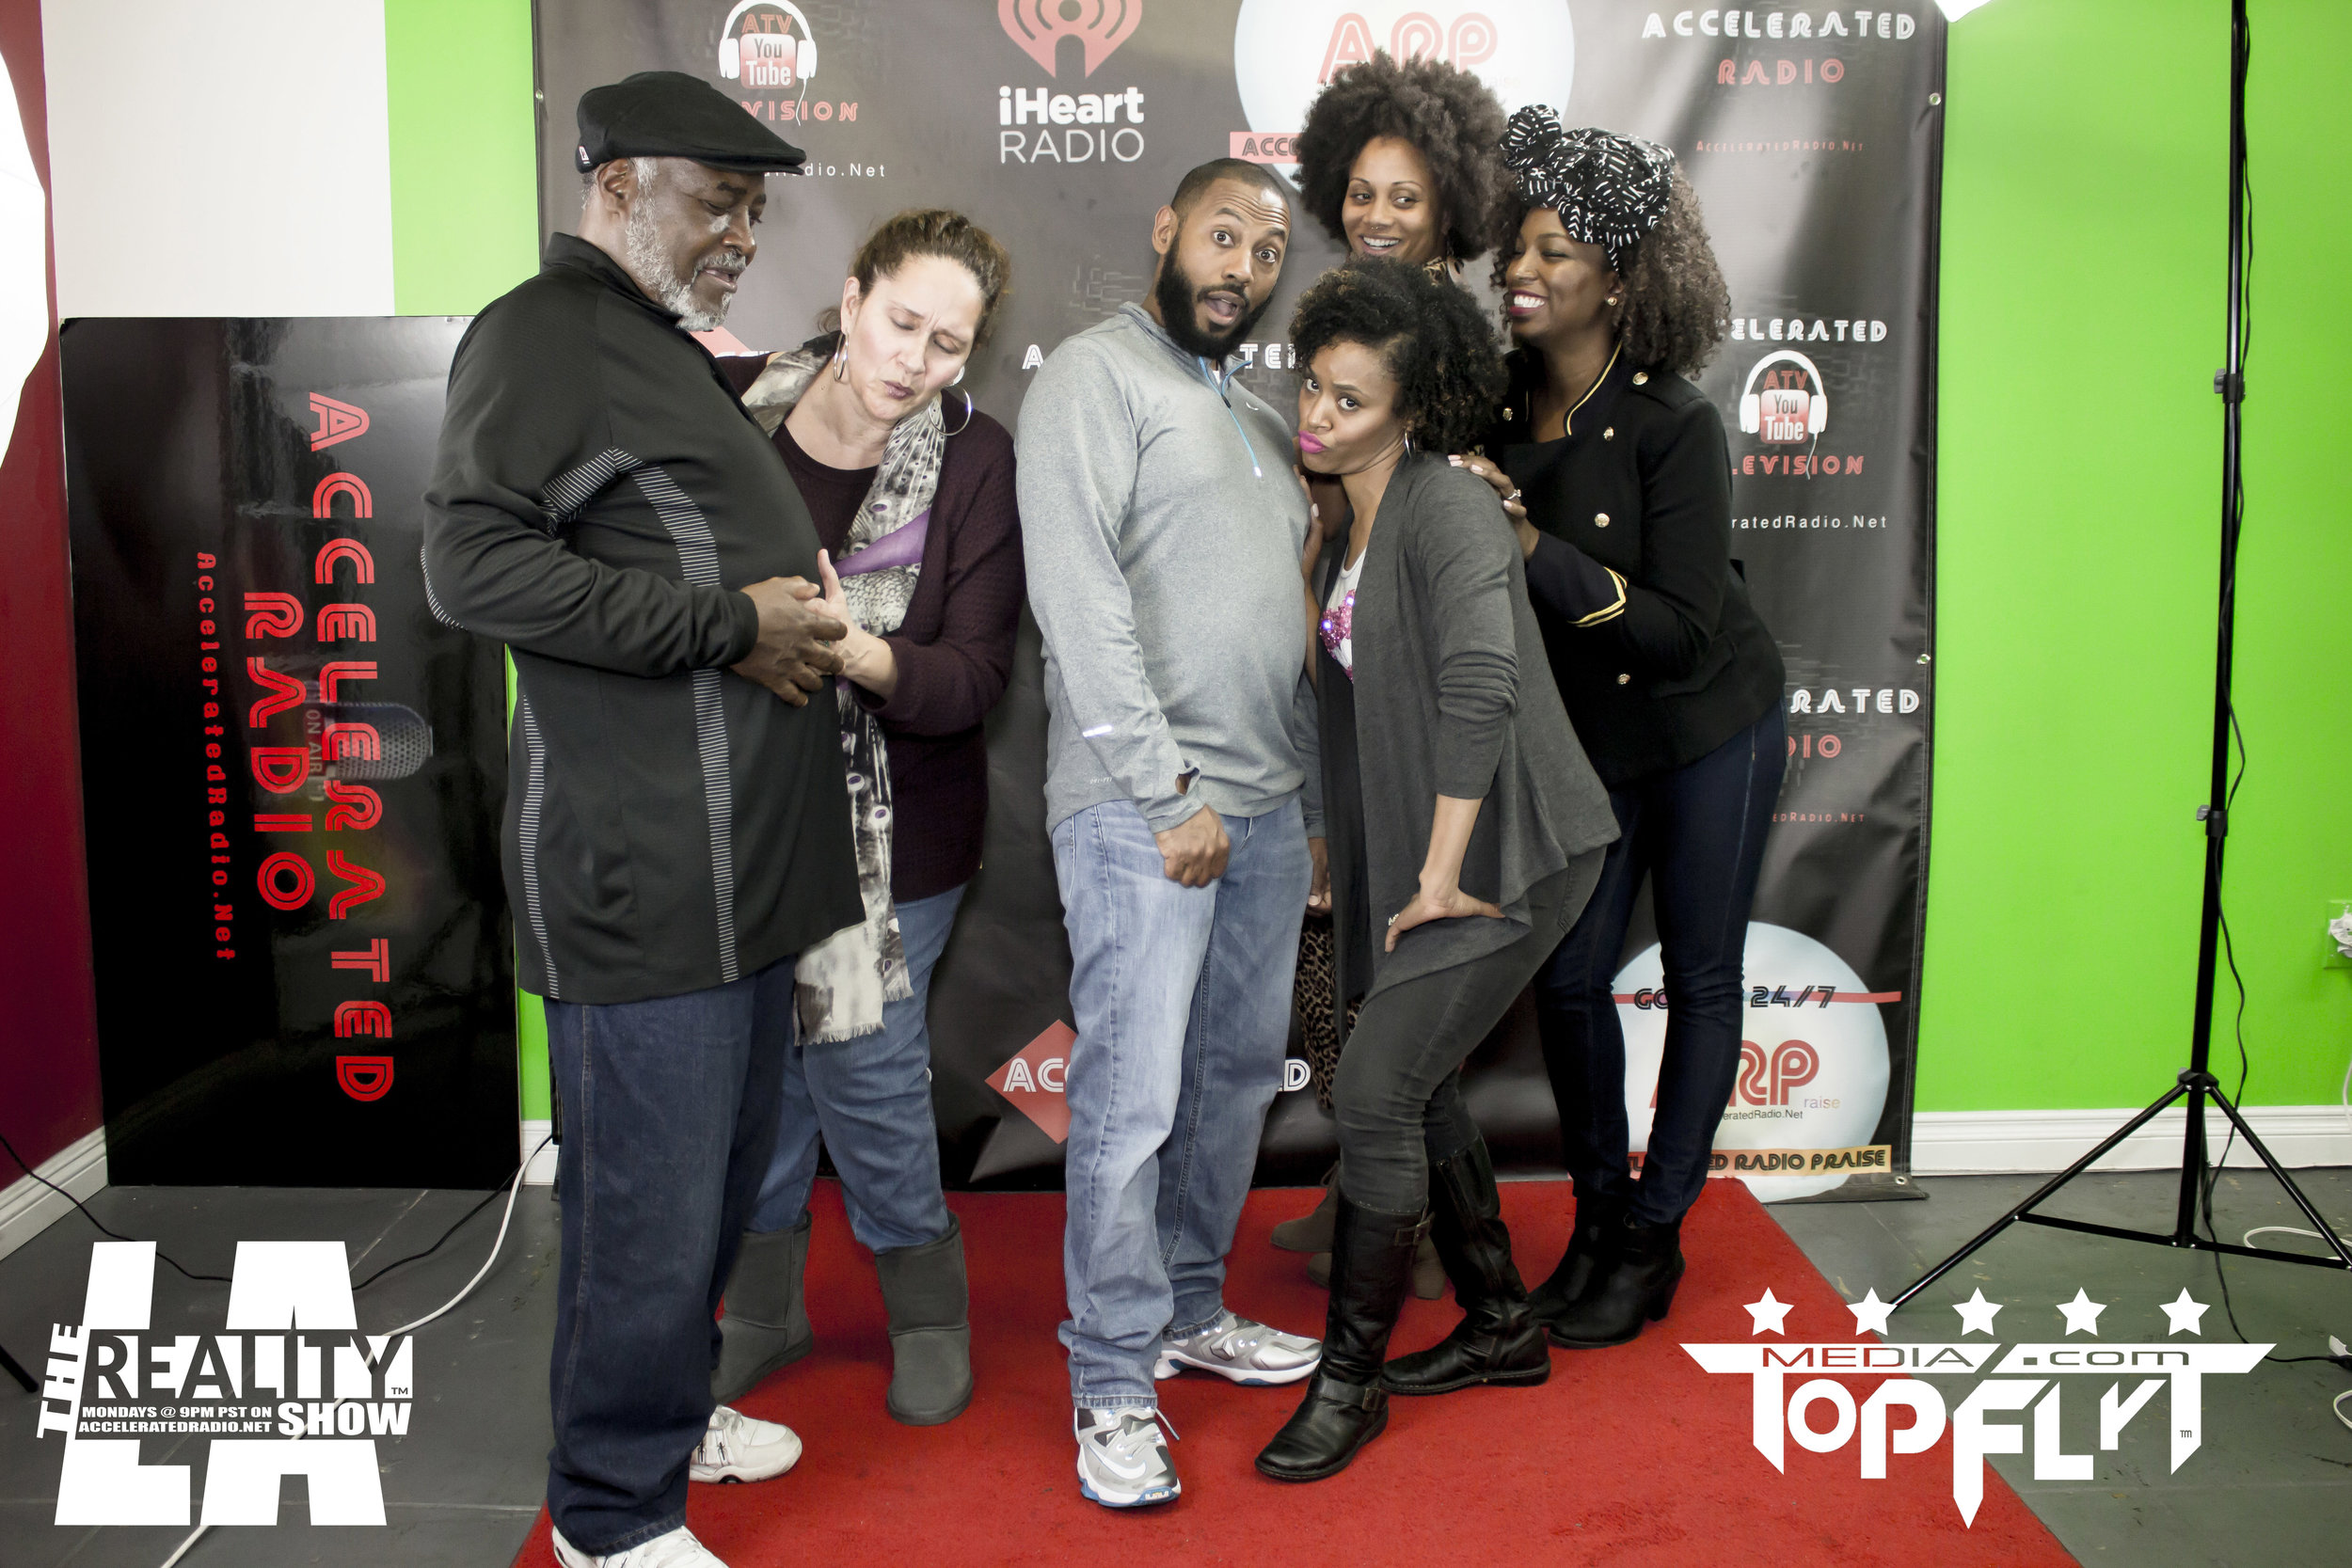 The Reality Show LA ft. Cast of FunnyMarriedStuff And Raquel Harris - 01-16-17_53.jpg